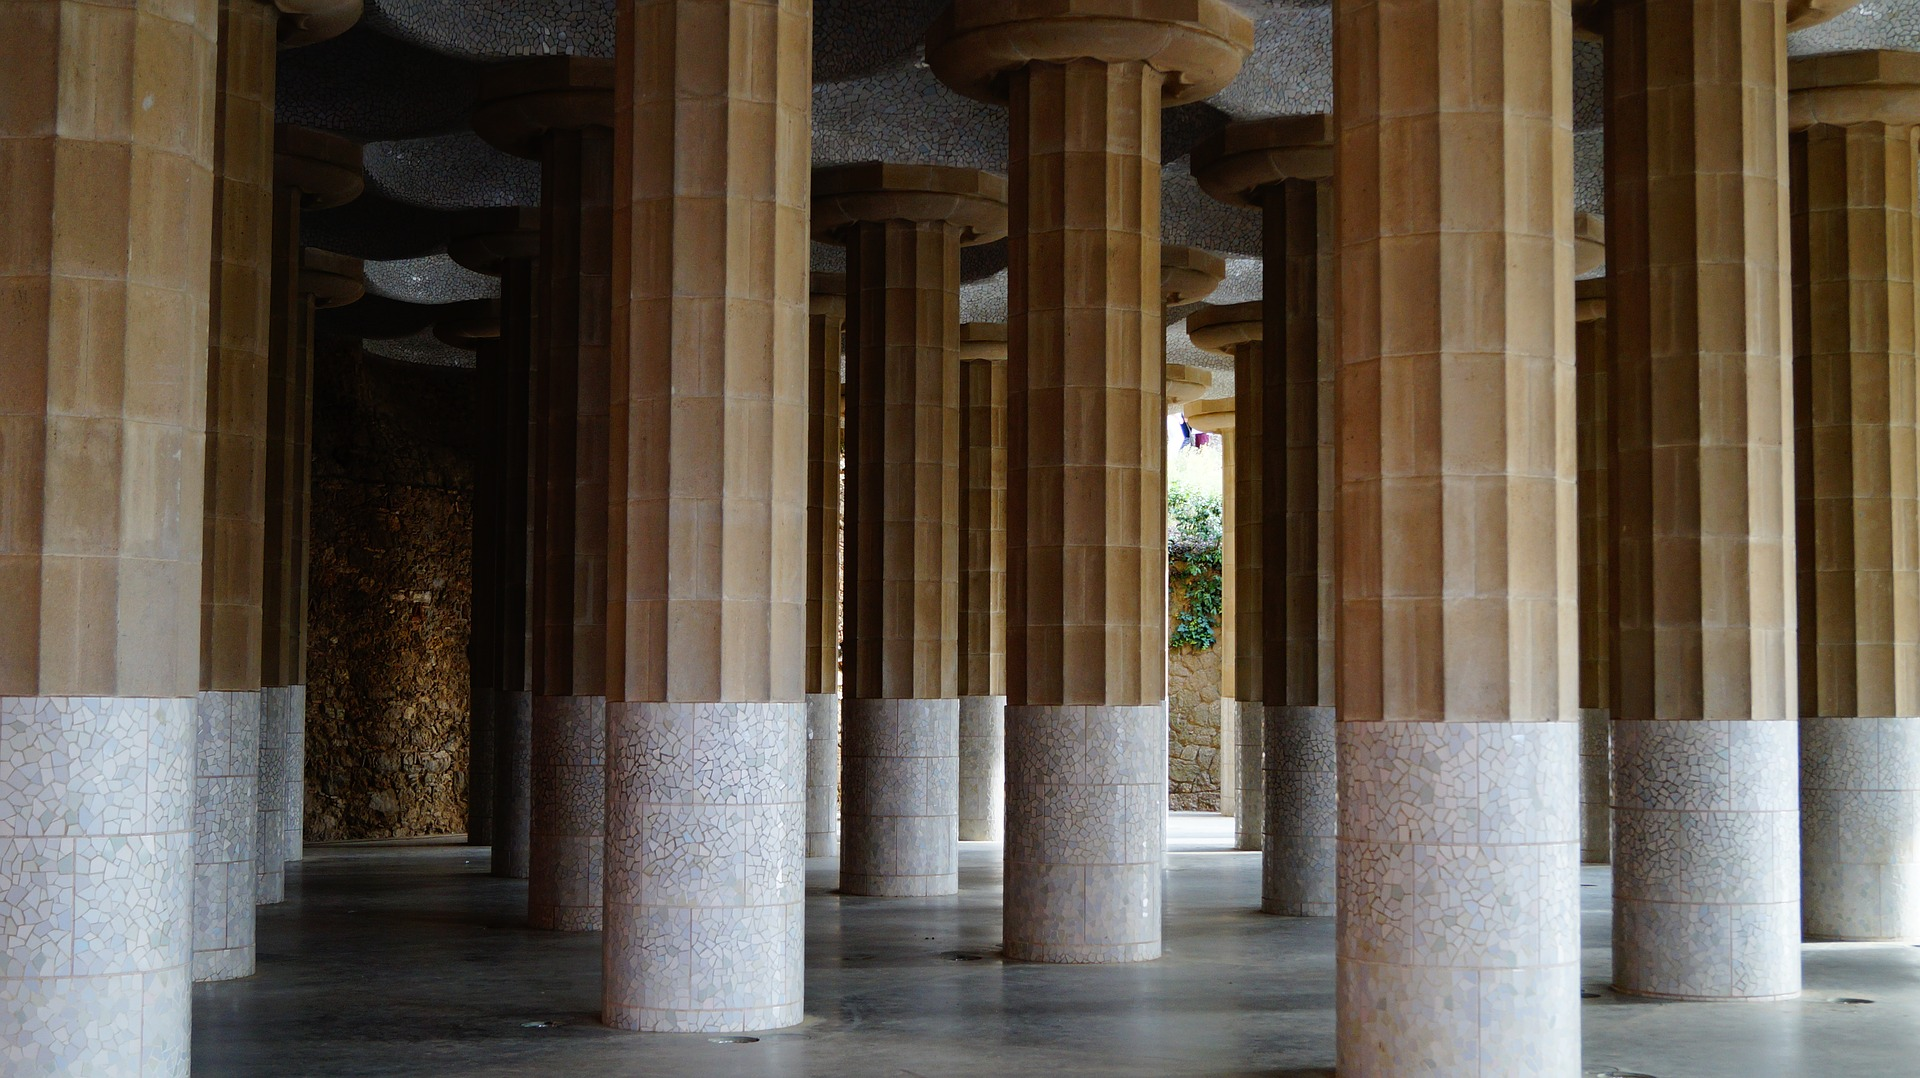 The Hall of a Hundred Columns